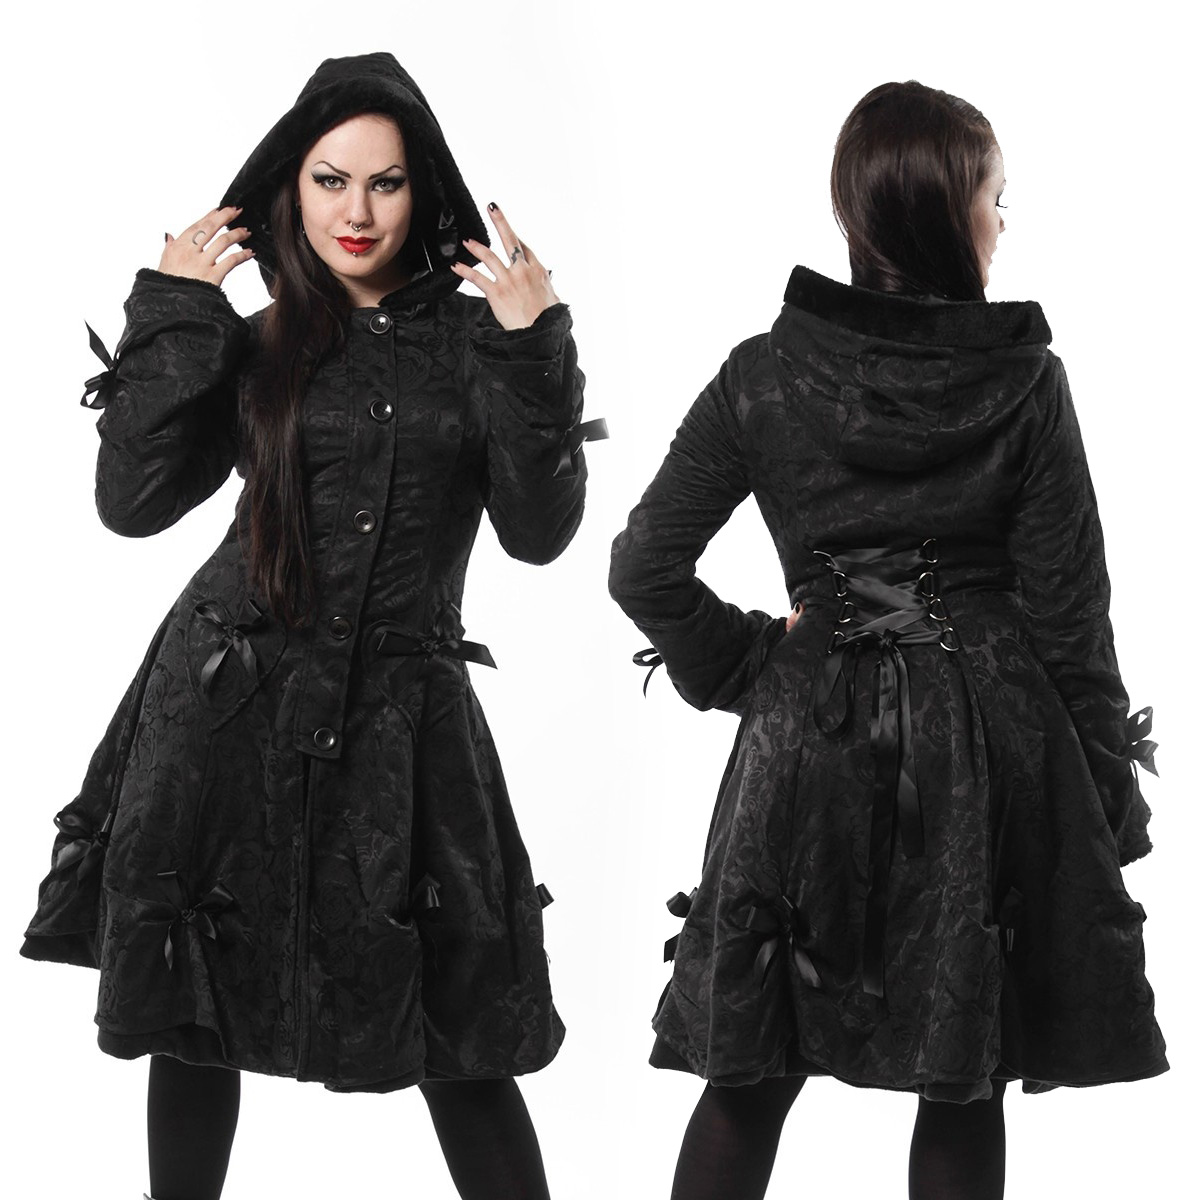 rebelsmarket_alice_coat_black_rose_poizen_industries_coats_2.jpg